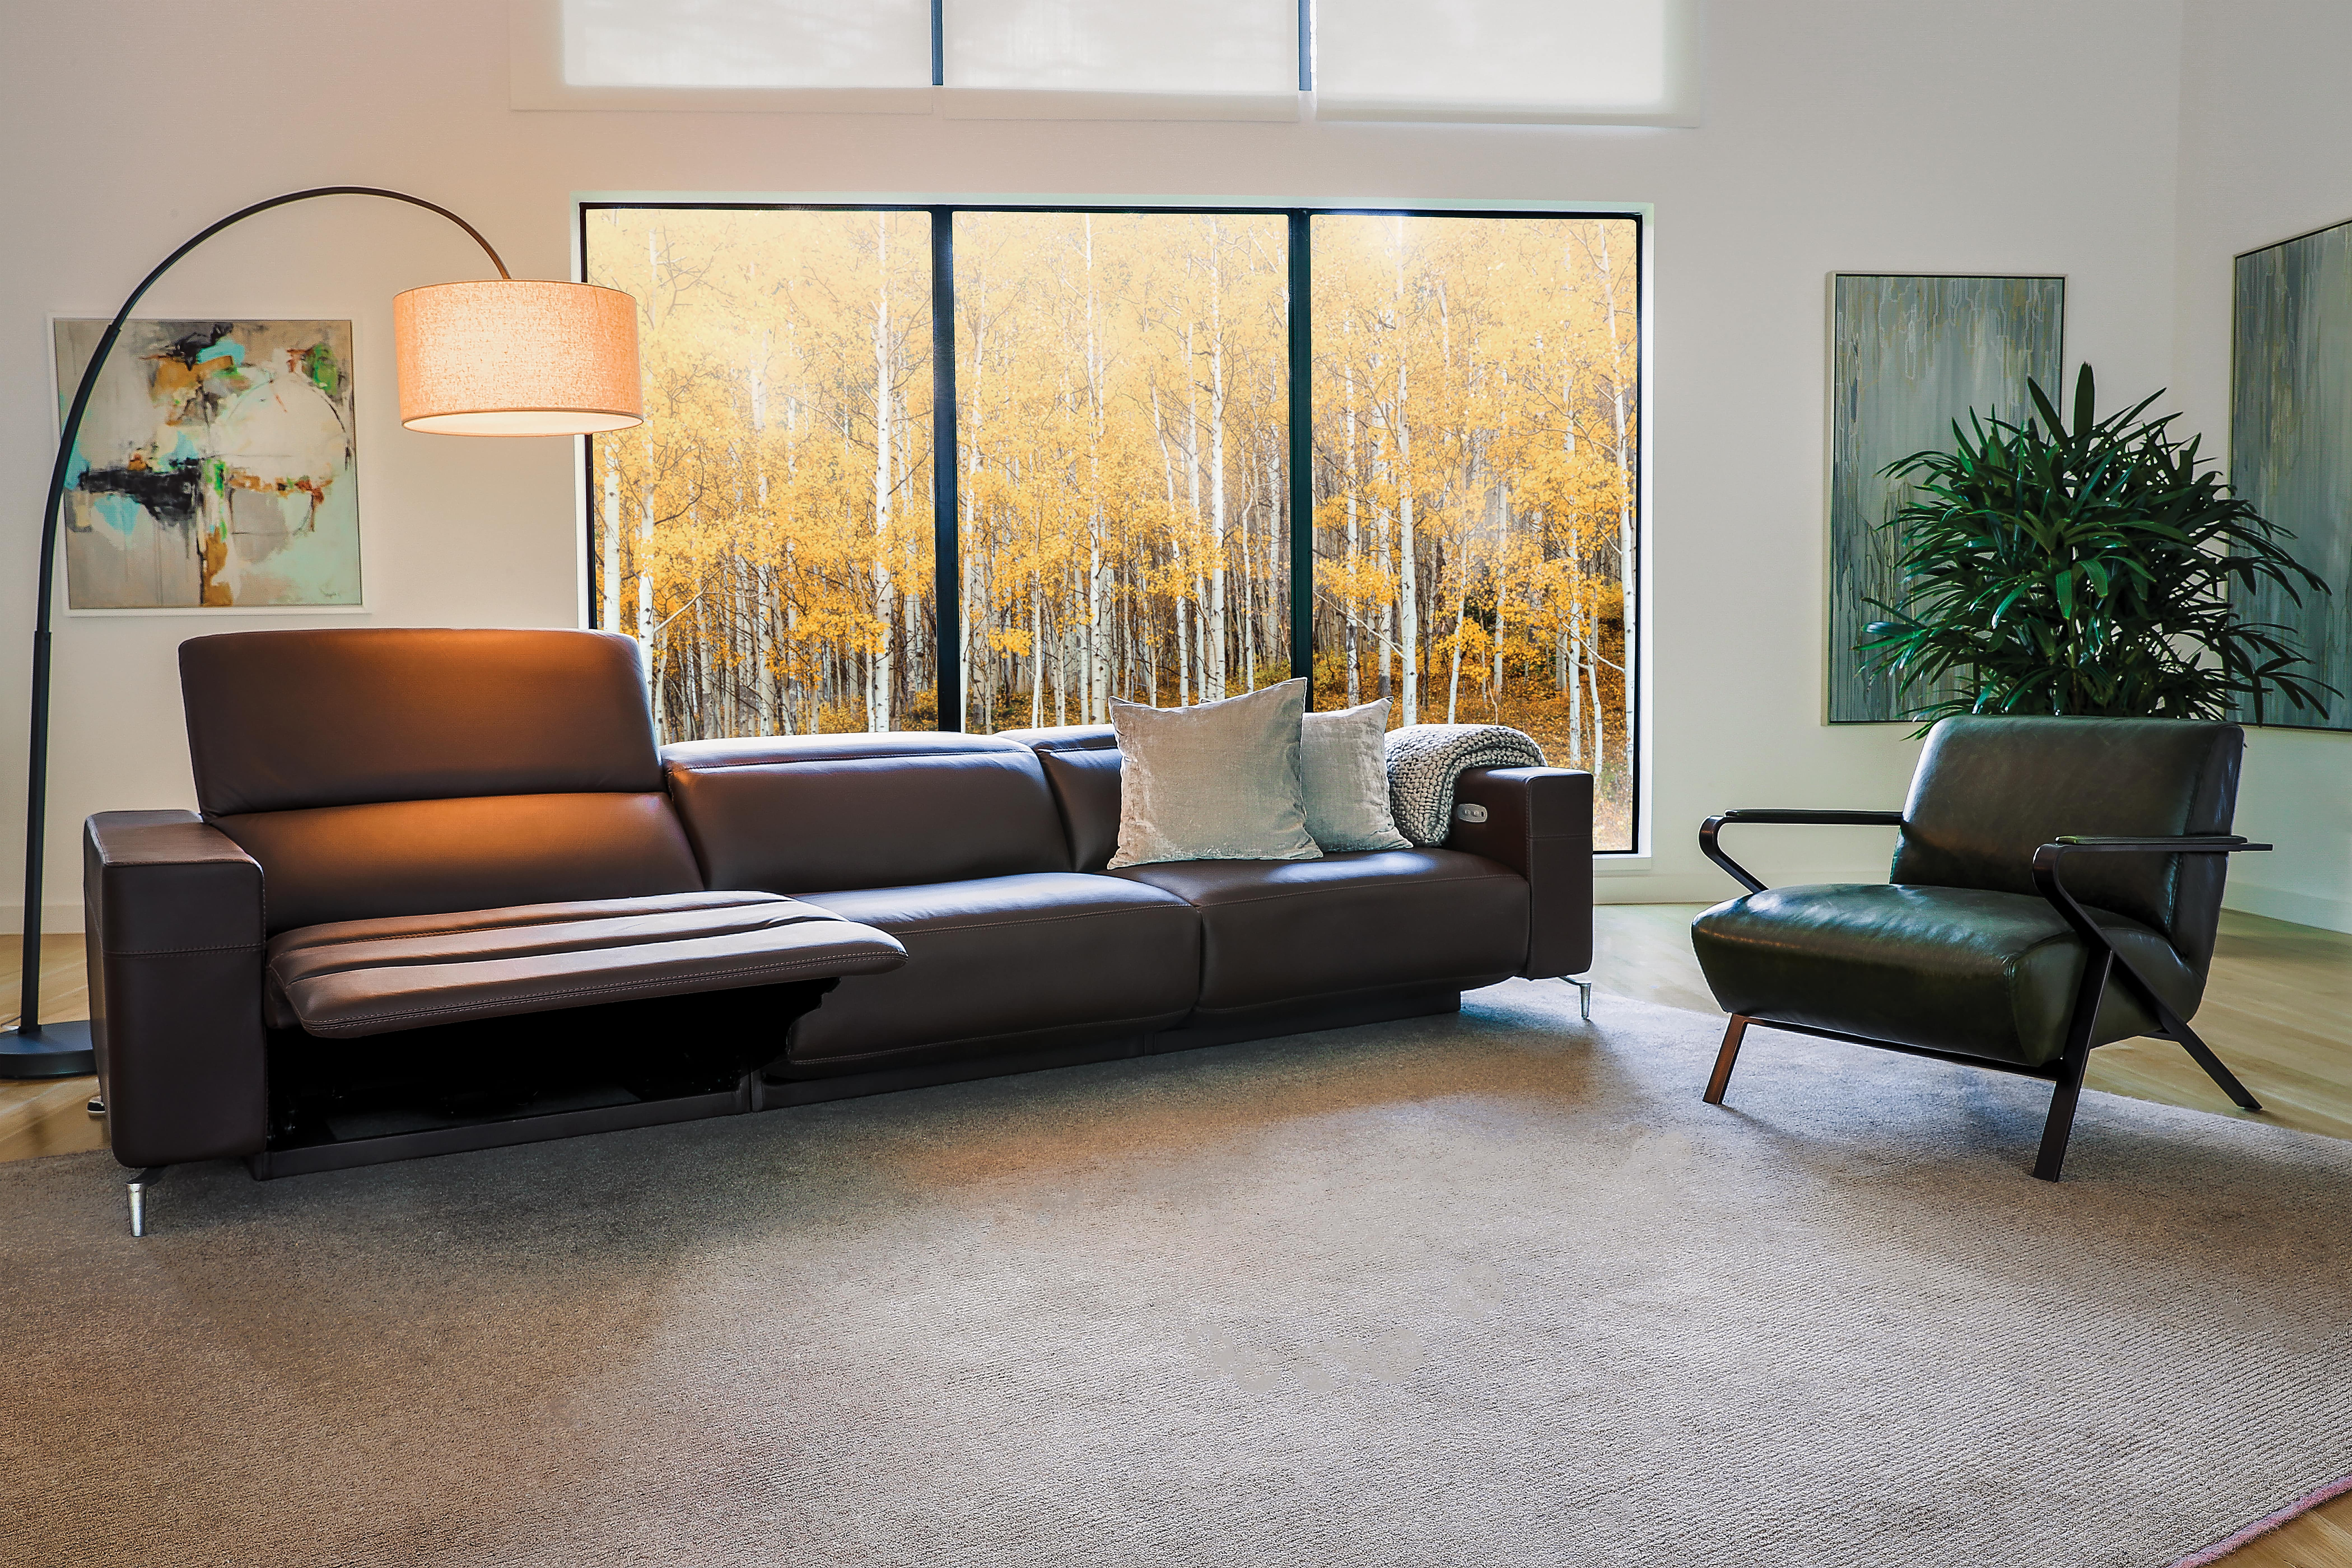 Circle Furniture - Power Reclining Sofas: Are They Right for You?